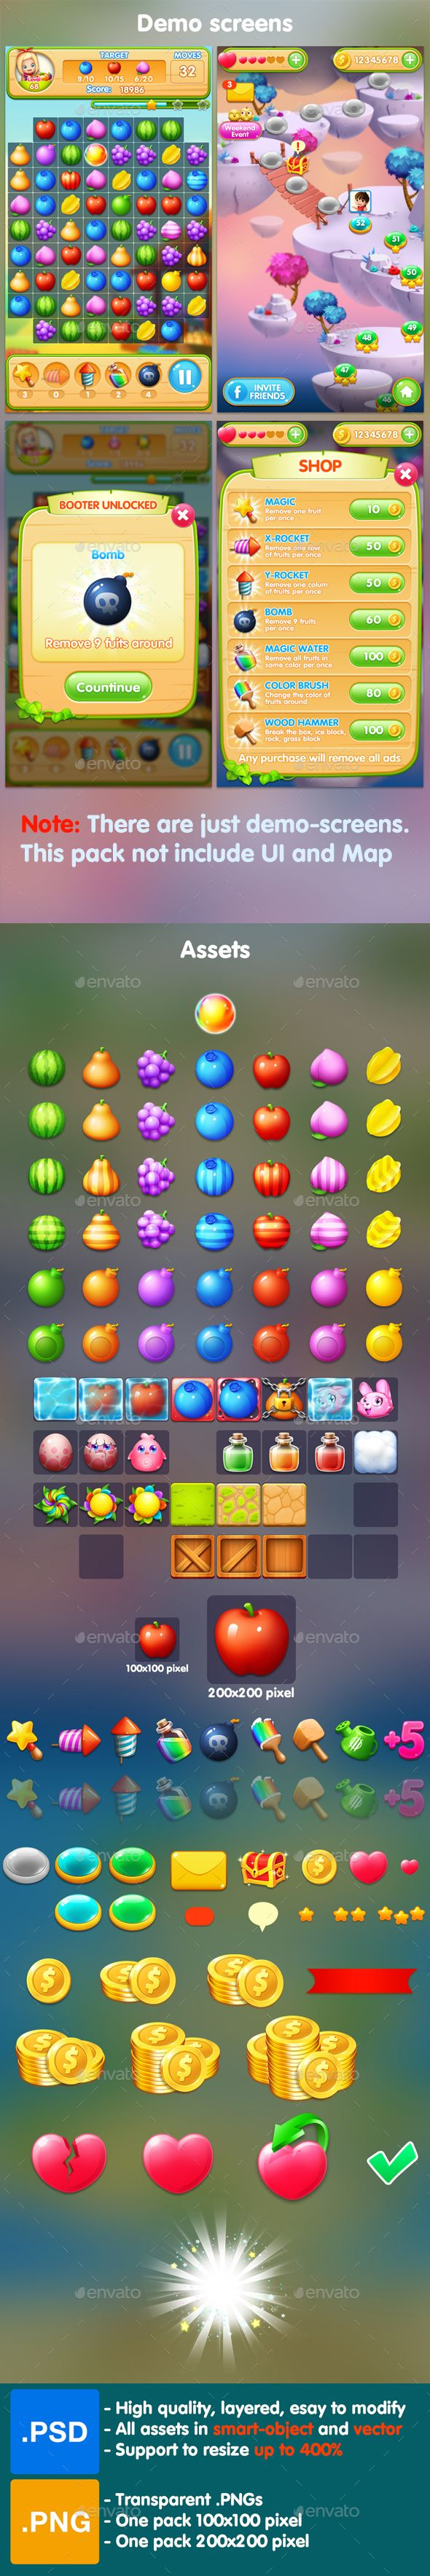 Fruits - Match 3 Game Assets - Game Kits Game Assets | Download: https://graphicriver.net/item/fruits-match-3-game-assets/19166220?ref=sinzo